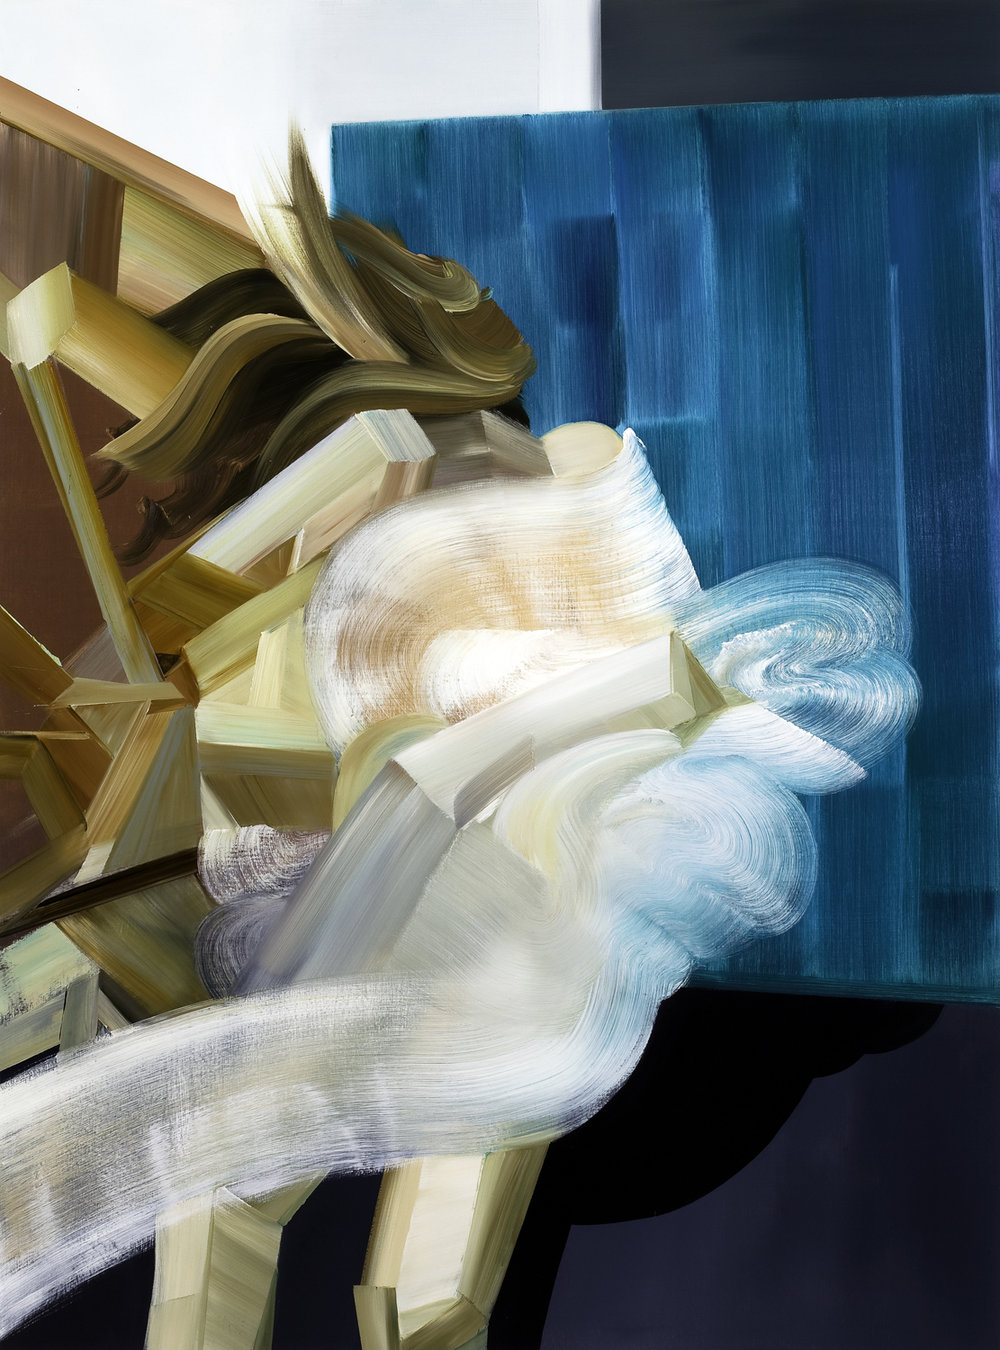 Sidestep (Woman in windstorm), 2010, oil on canvas